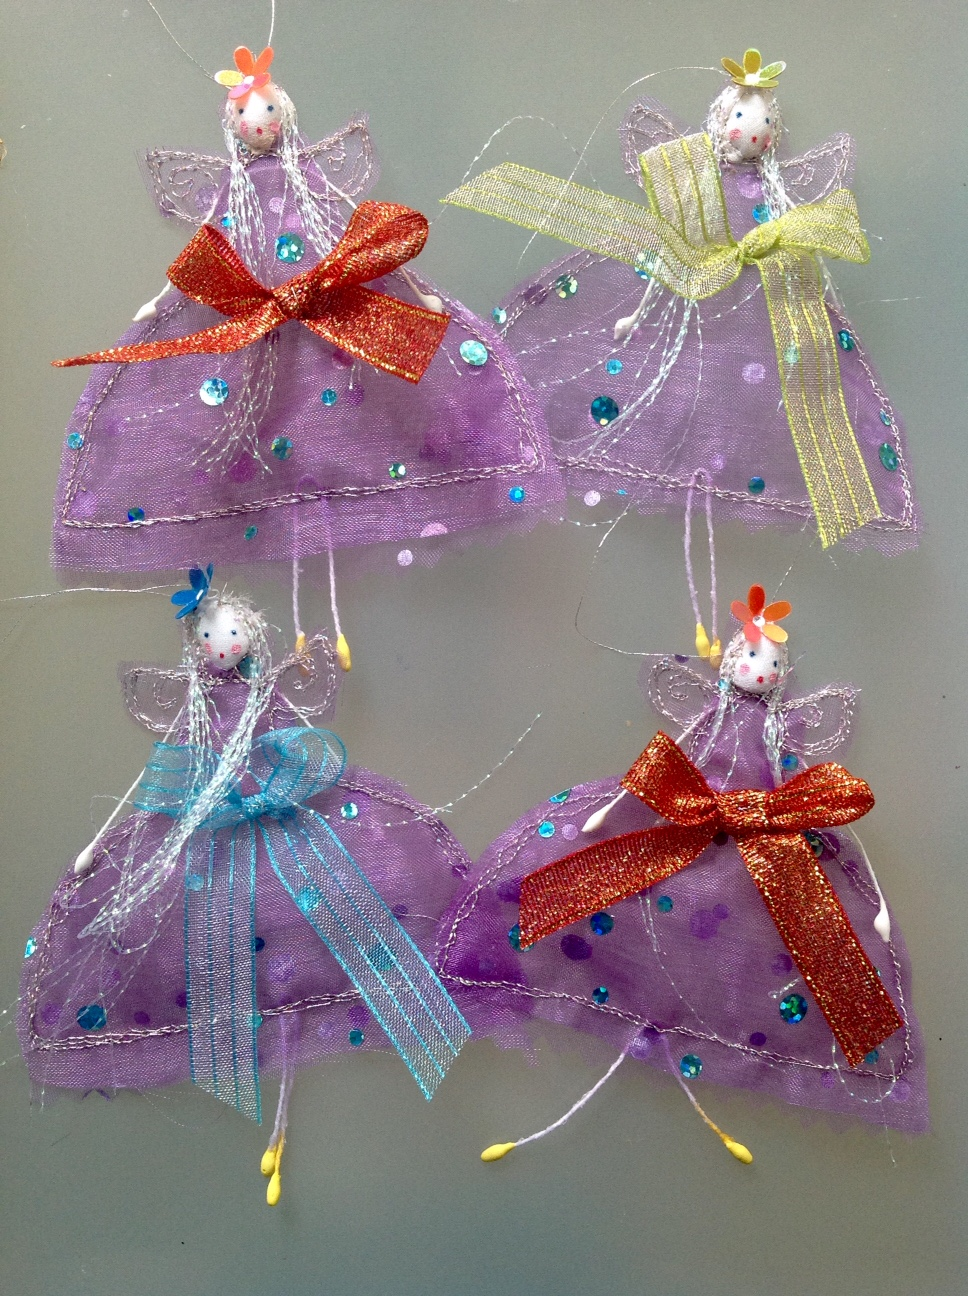 10cm hanging fairies, wearing purple organza ... £4.50 each or 4 for £16 plus £1 postage.